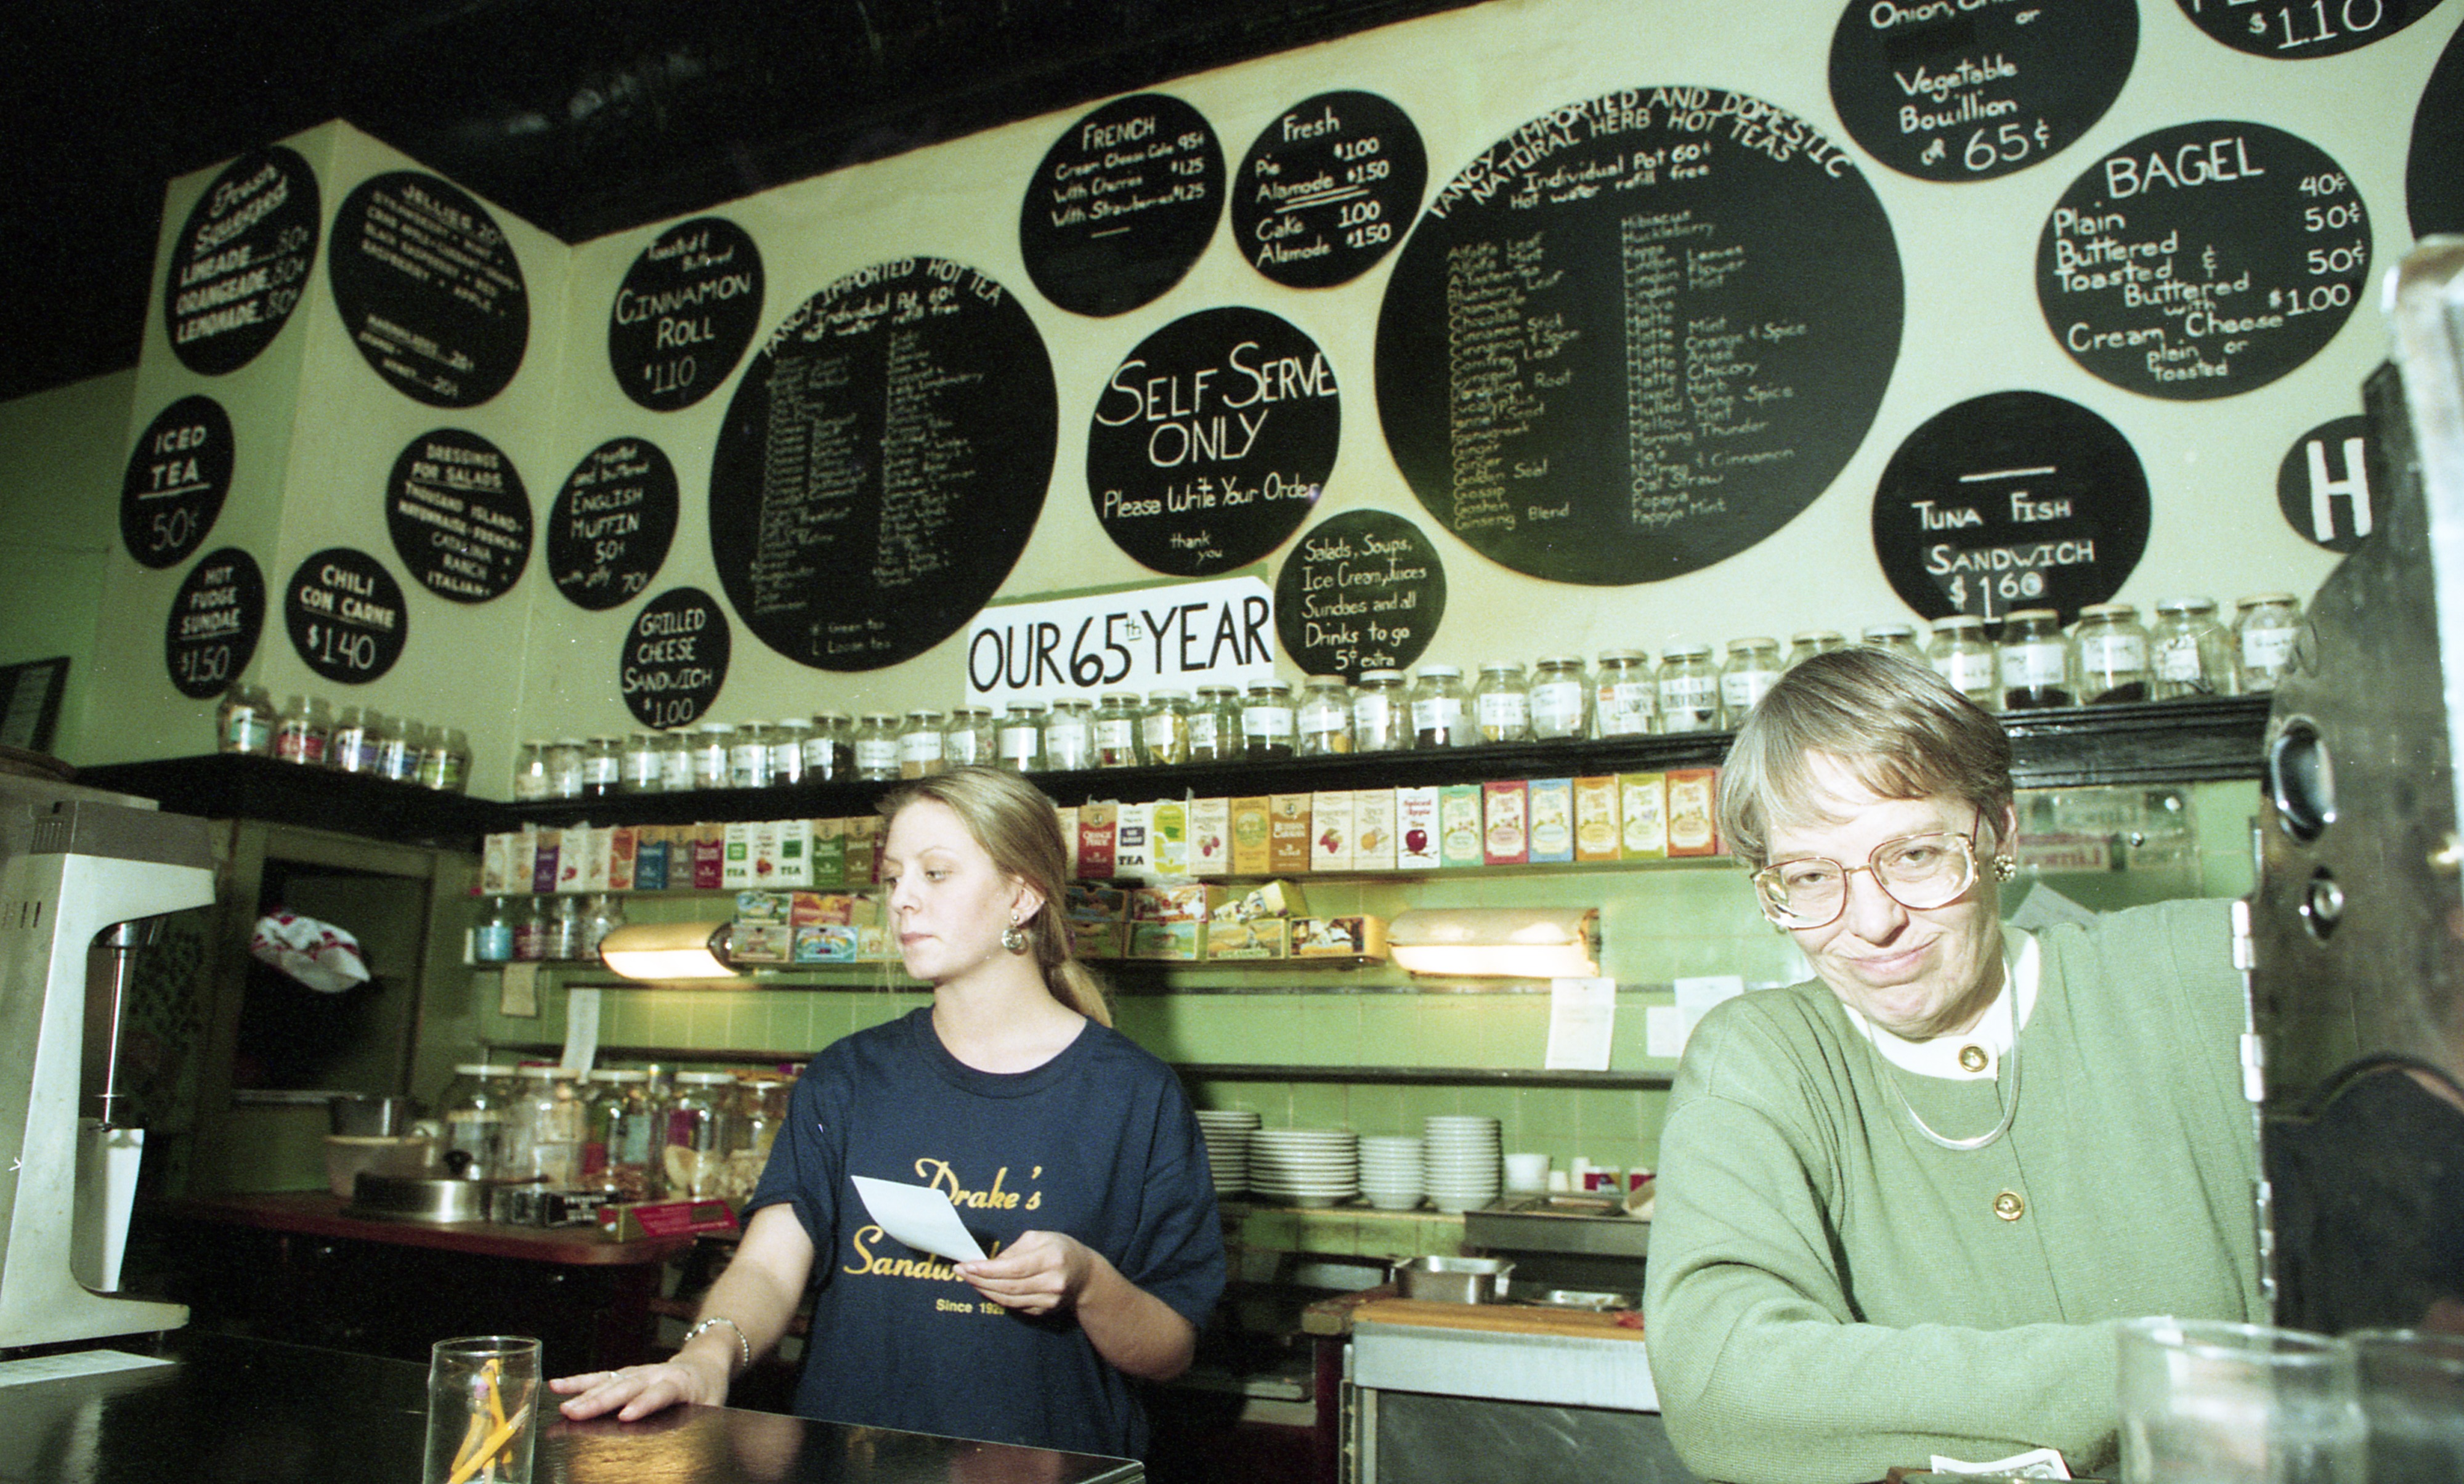 Eleanor Tibbals & Staff Serve Customers At Drake's Sandwich Shop, November 13, 1993 image